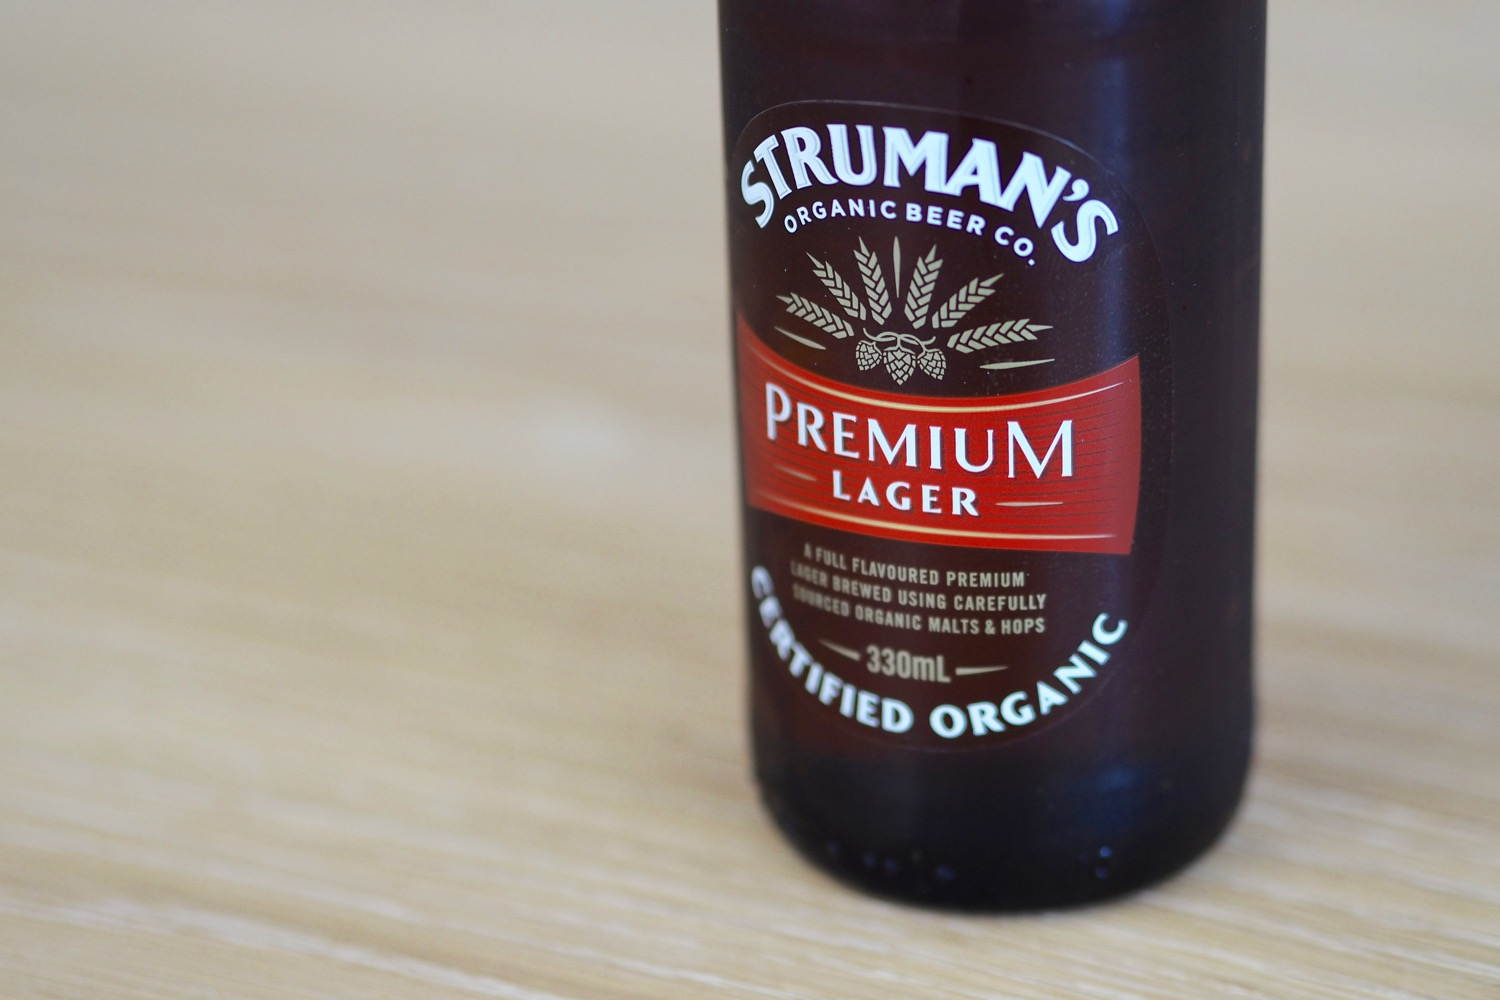 Struman's Organic Beer Co. Premium Lager Review